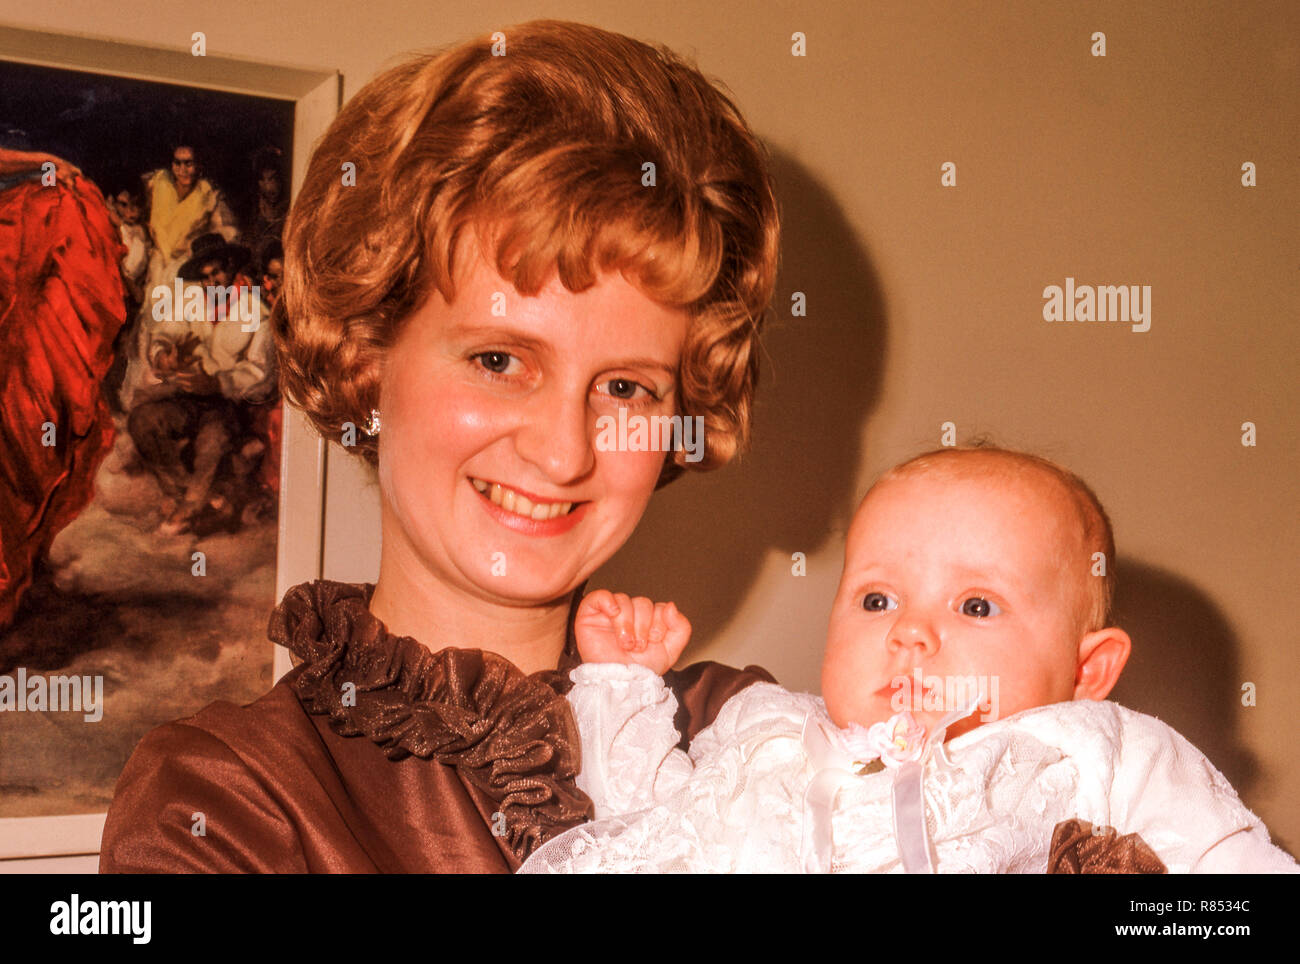 Mother and daughter on Christening Day - Stock Image